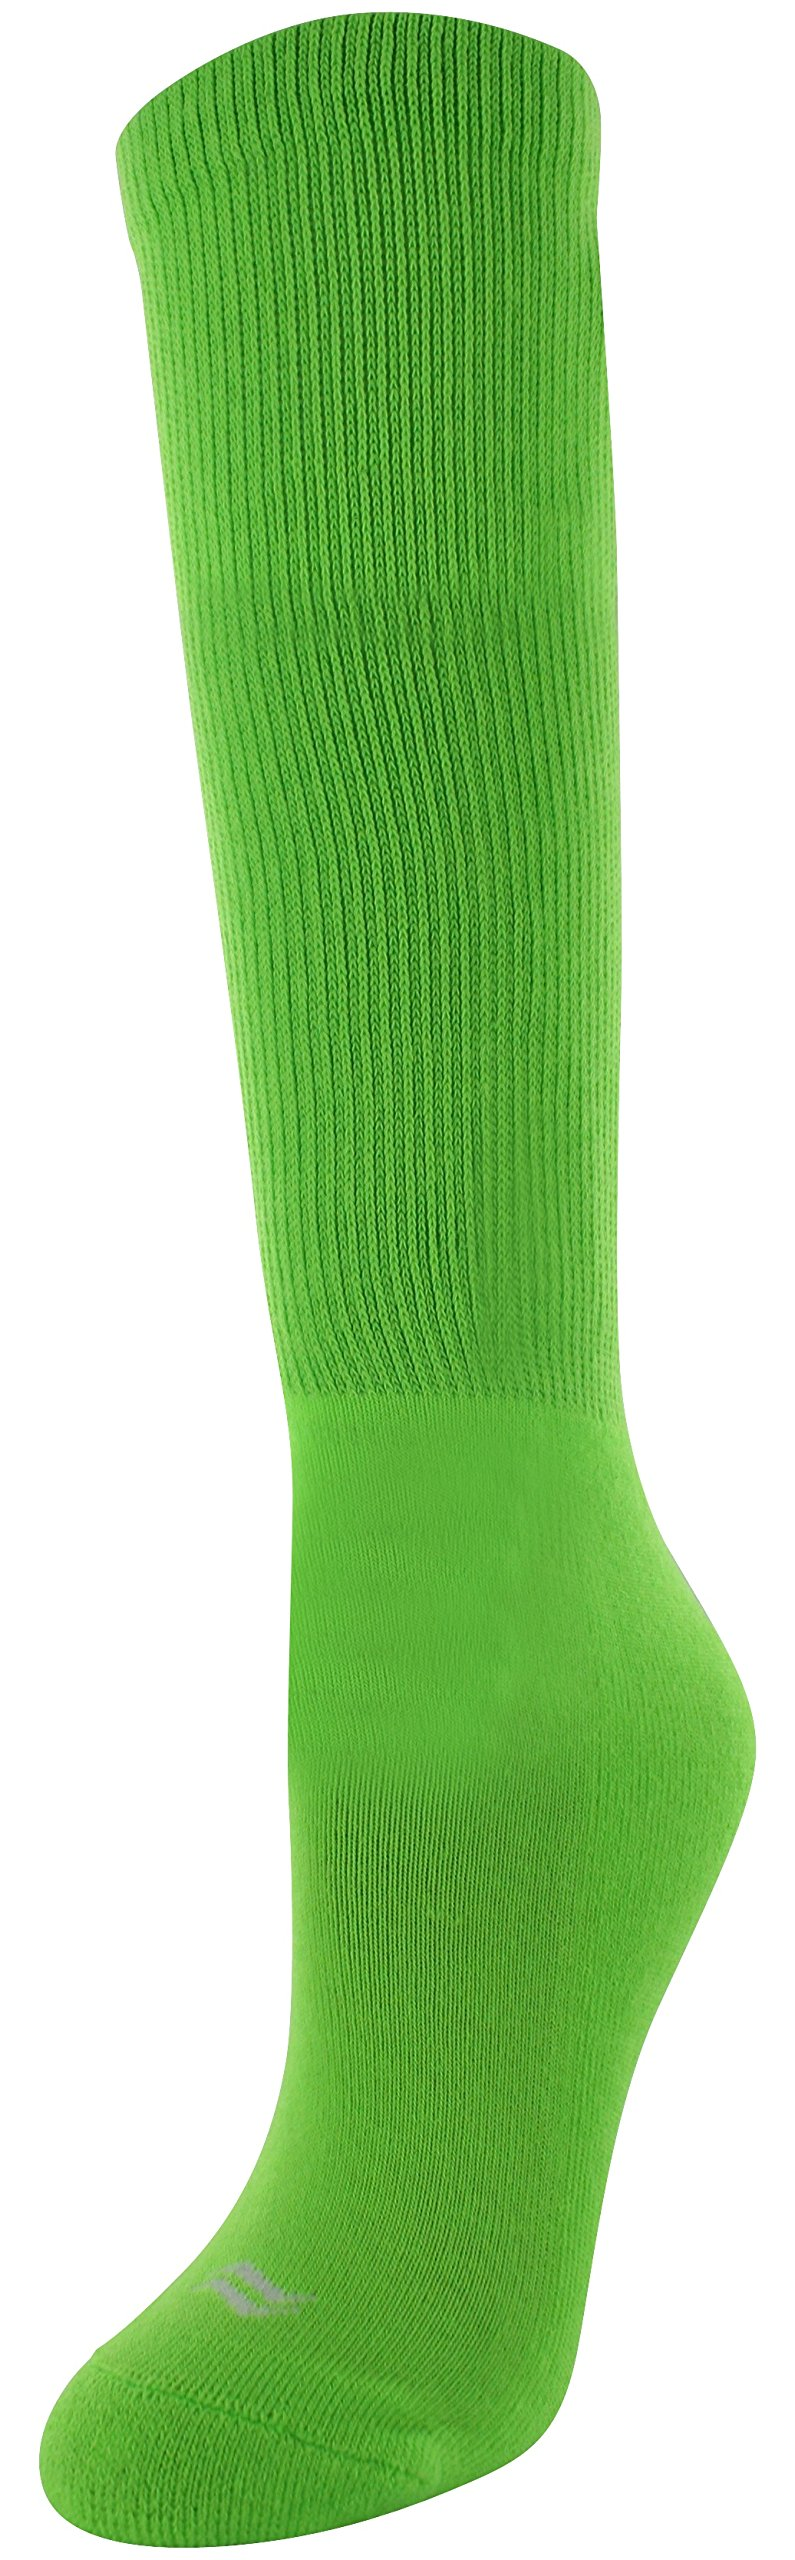 Sof Sole Girls' Child 13-Youth 4, Neon Green, Child 13-Youth 4 by Sof Sole